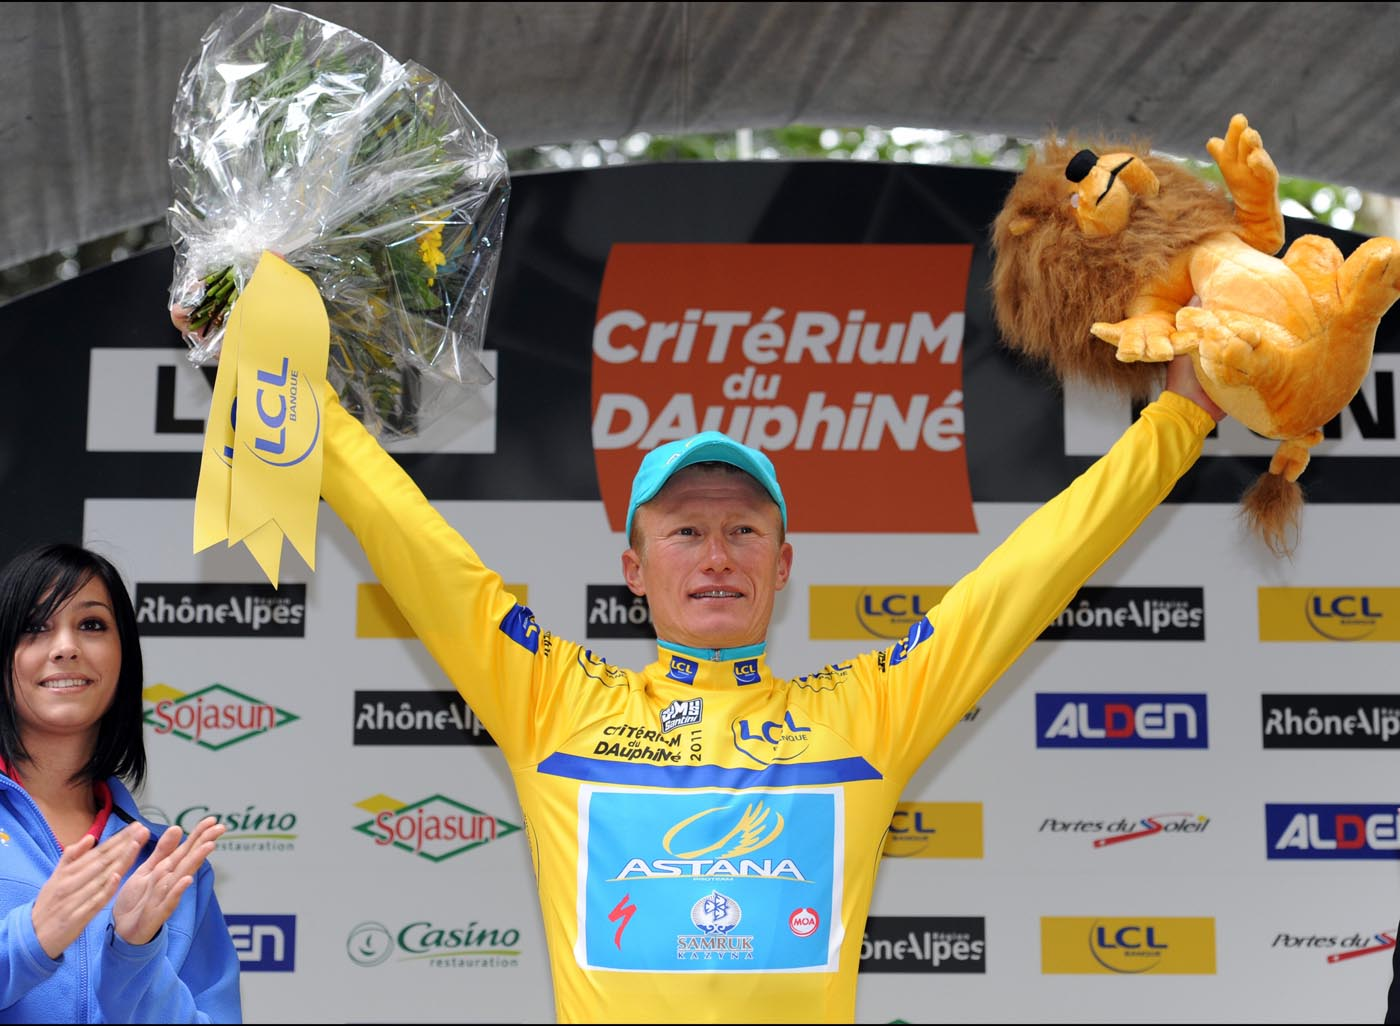 Alexandre Vinokourov maintains lead, Criterium du Dauphine 2011, stage two